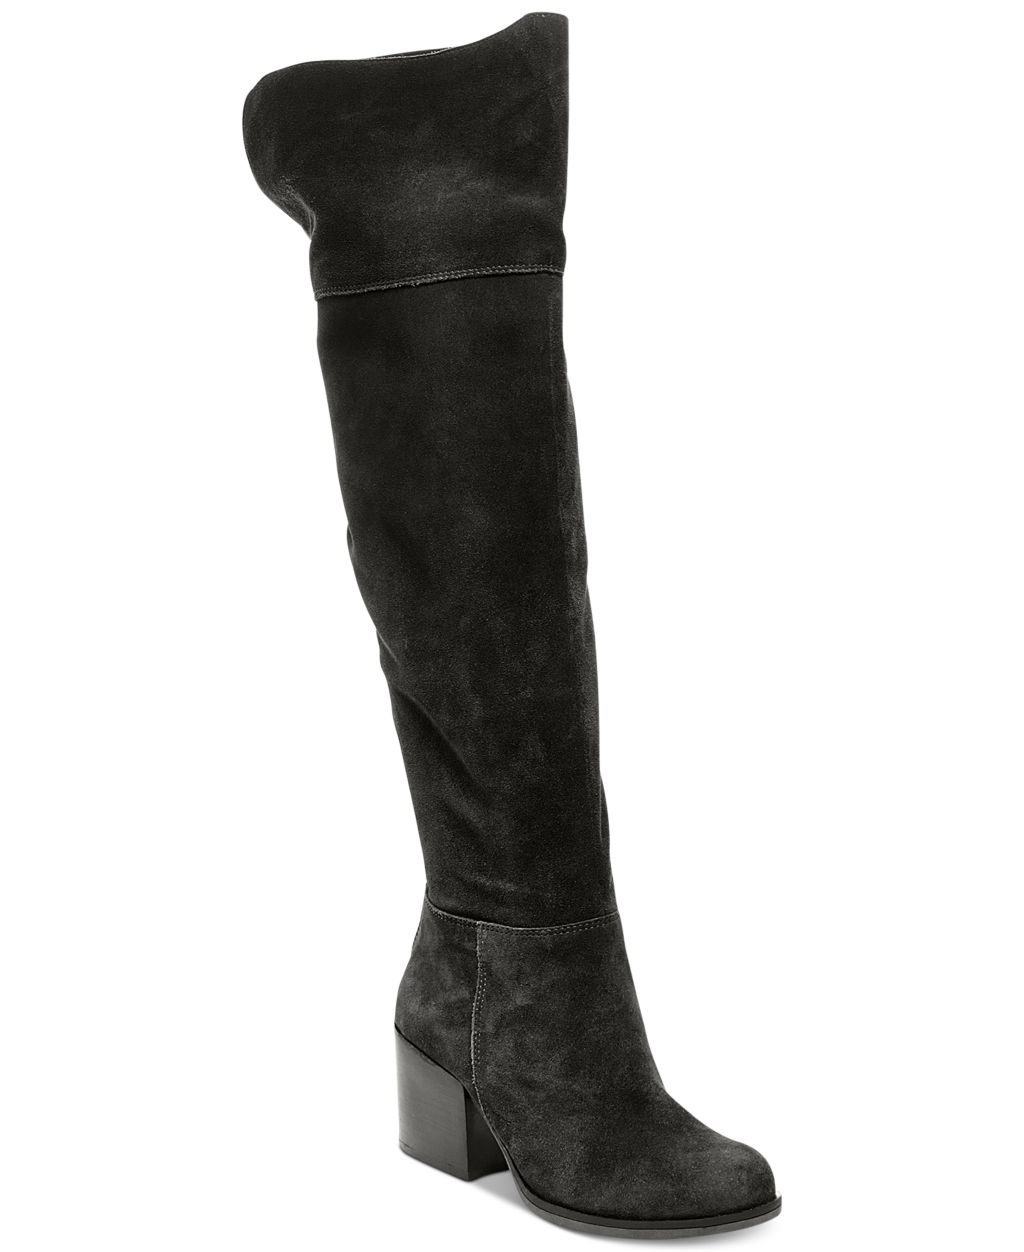 Steve Madden Manmade Sole Women's Orabela Over-The-Knee Boots